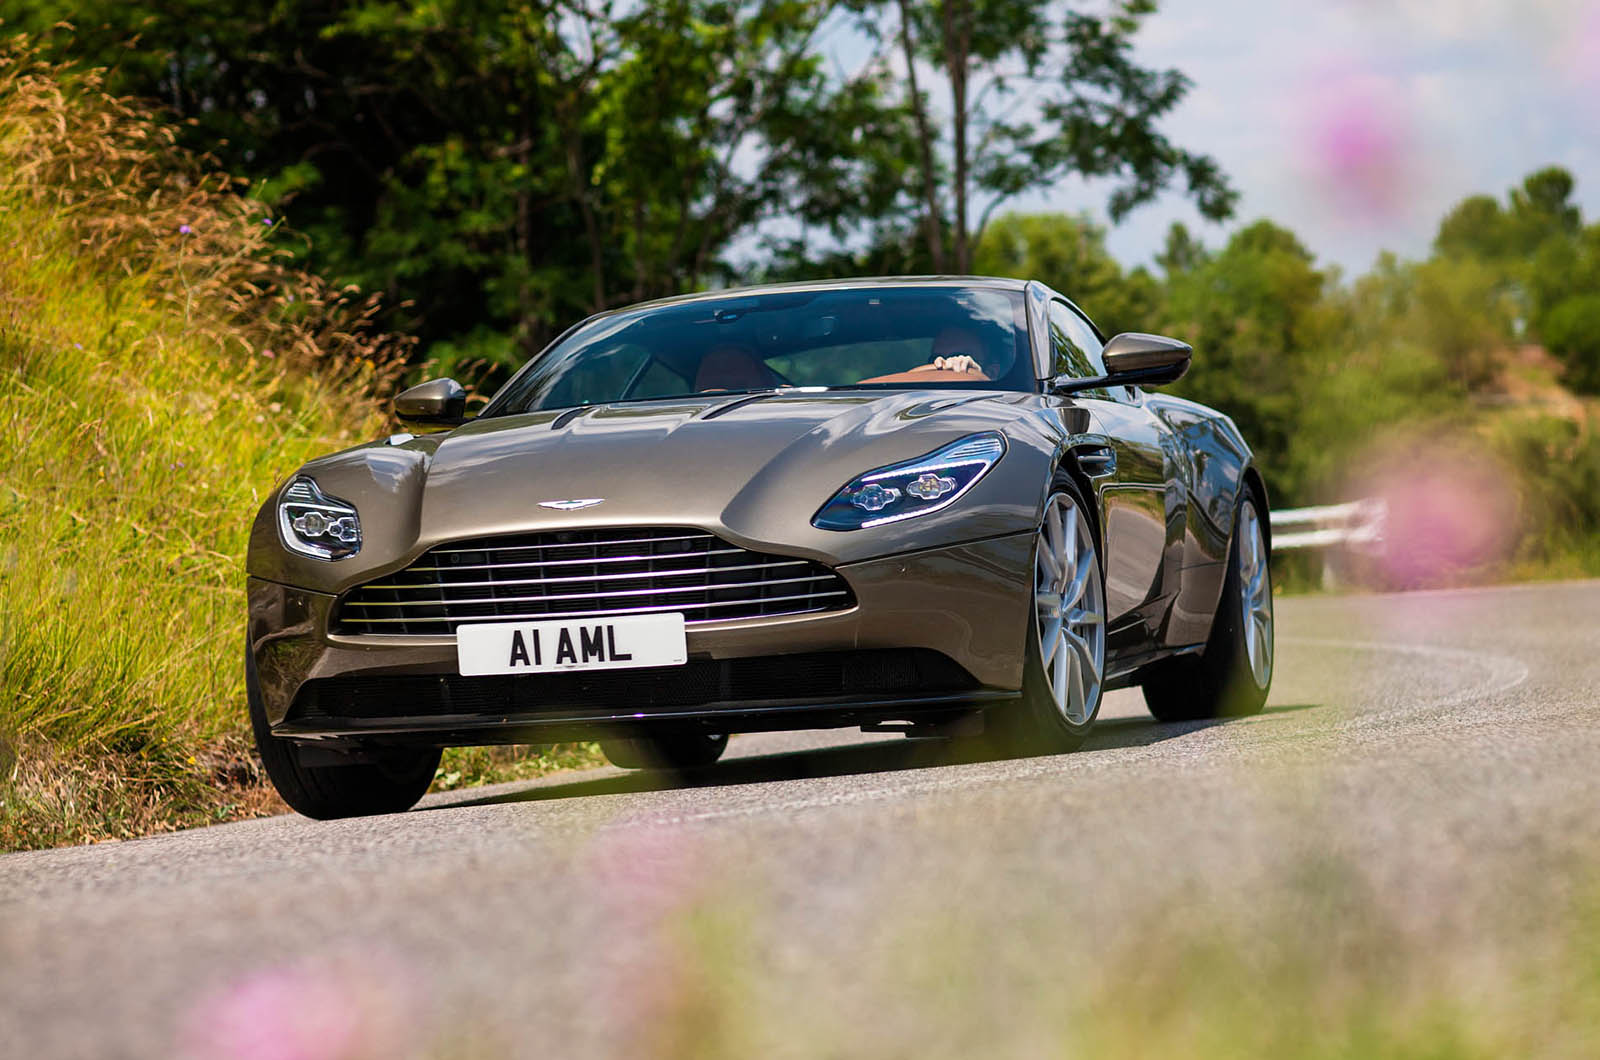 2016 aston martin db11 review | autocar